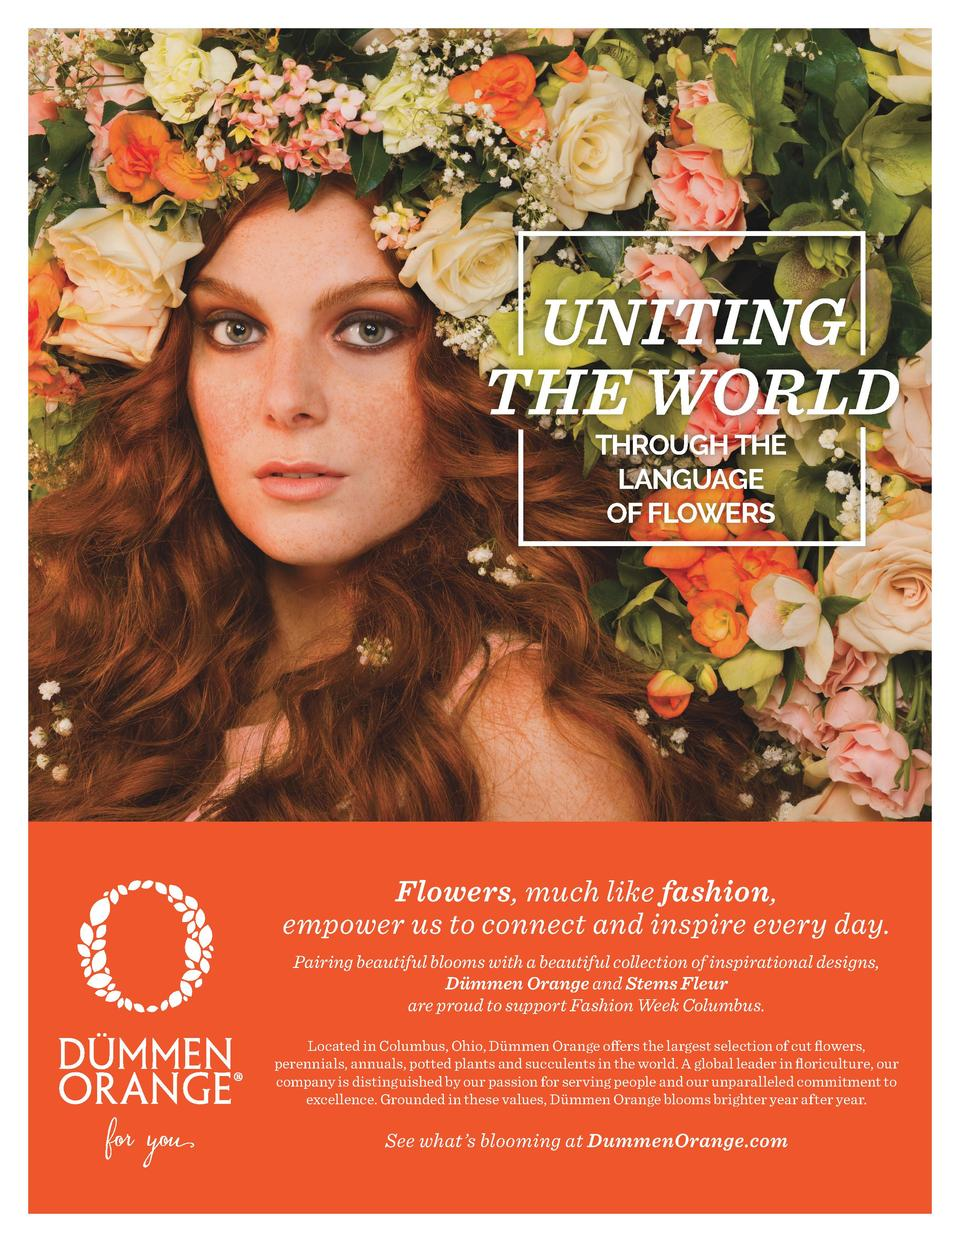 UNITING THE WORLD THROUGH THE LANGUAGE OF FLOWERS  AD  Flowers, much like fashion, empower us to connect and inspire every...